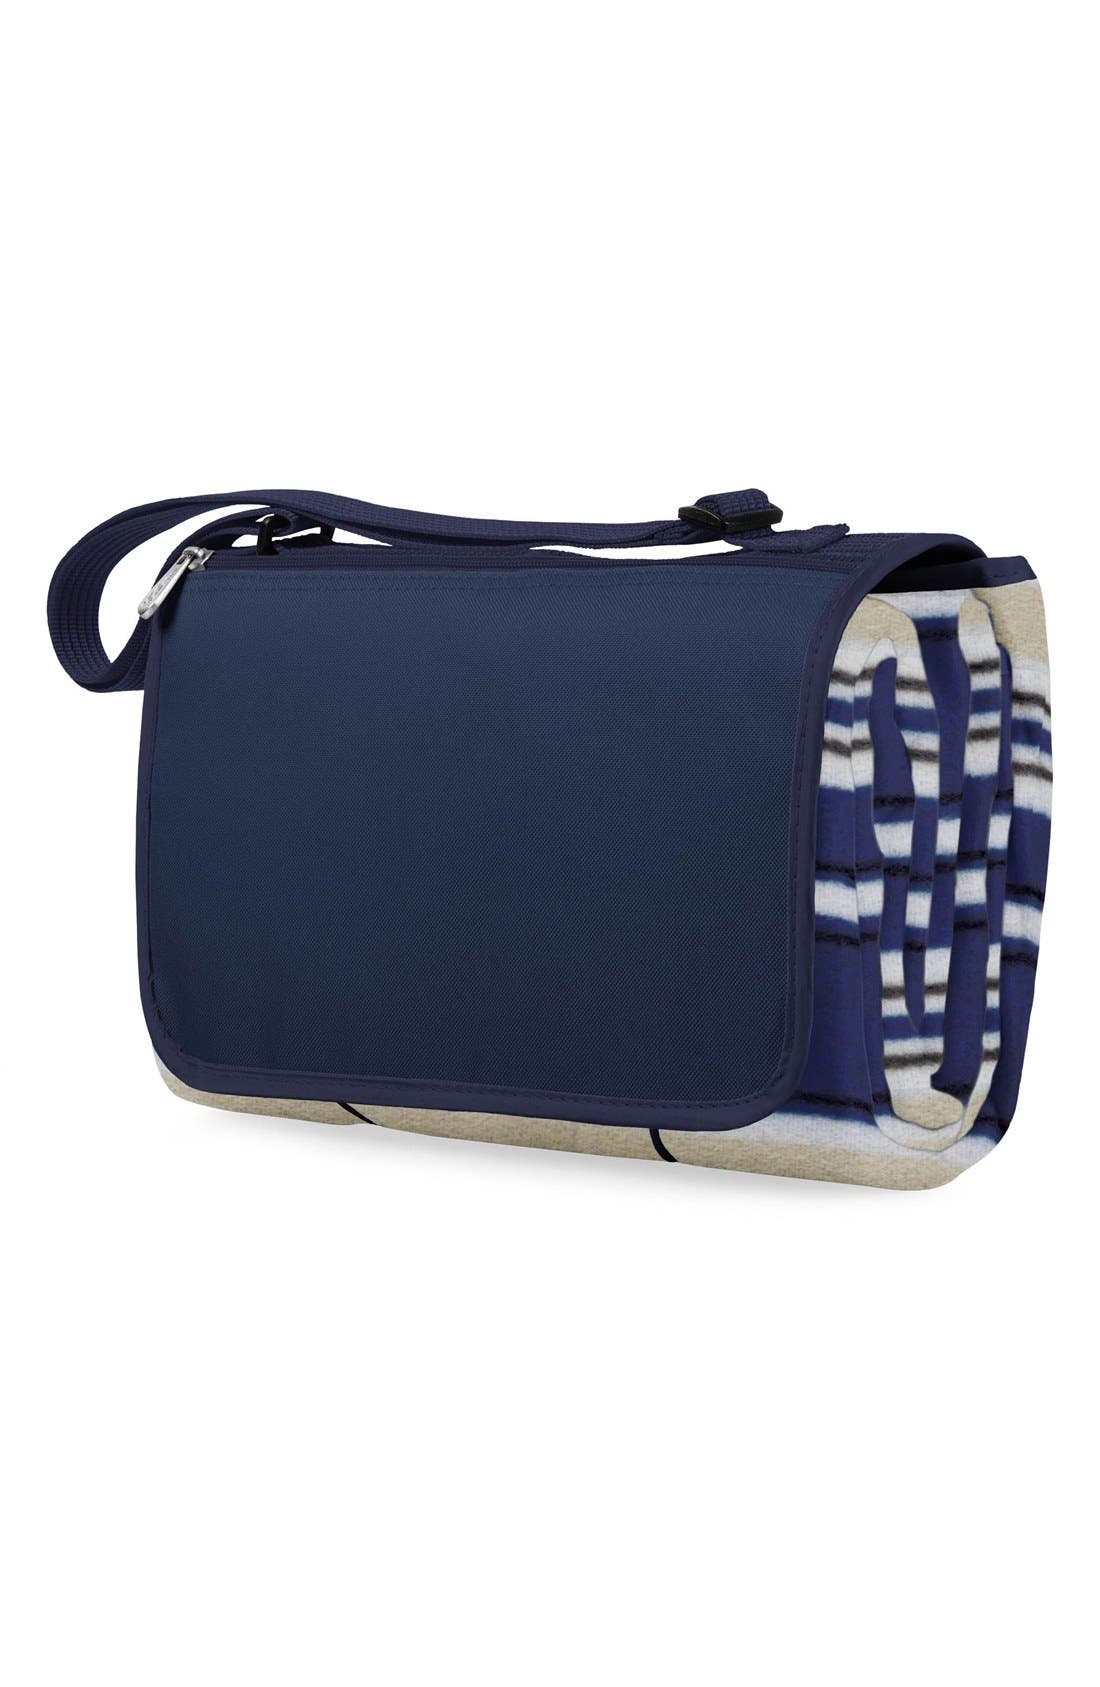 Blanket Tote,                             Main thumbnail 1, color,                             Blue